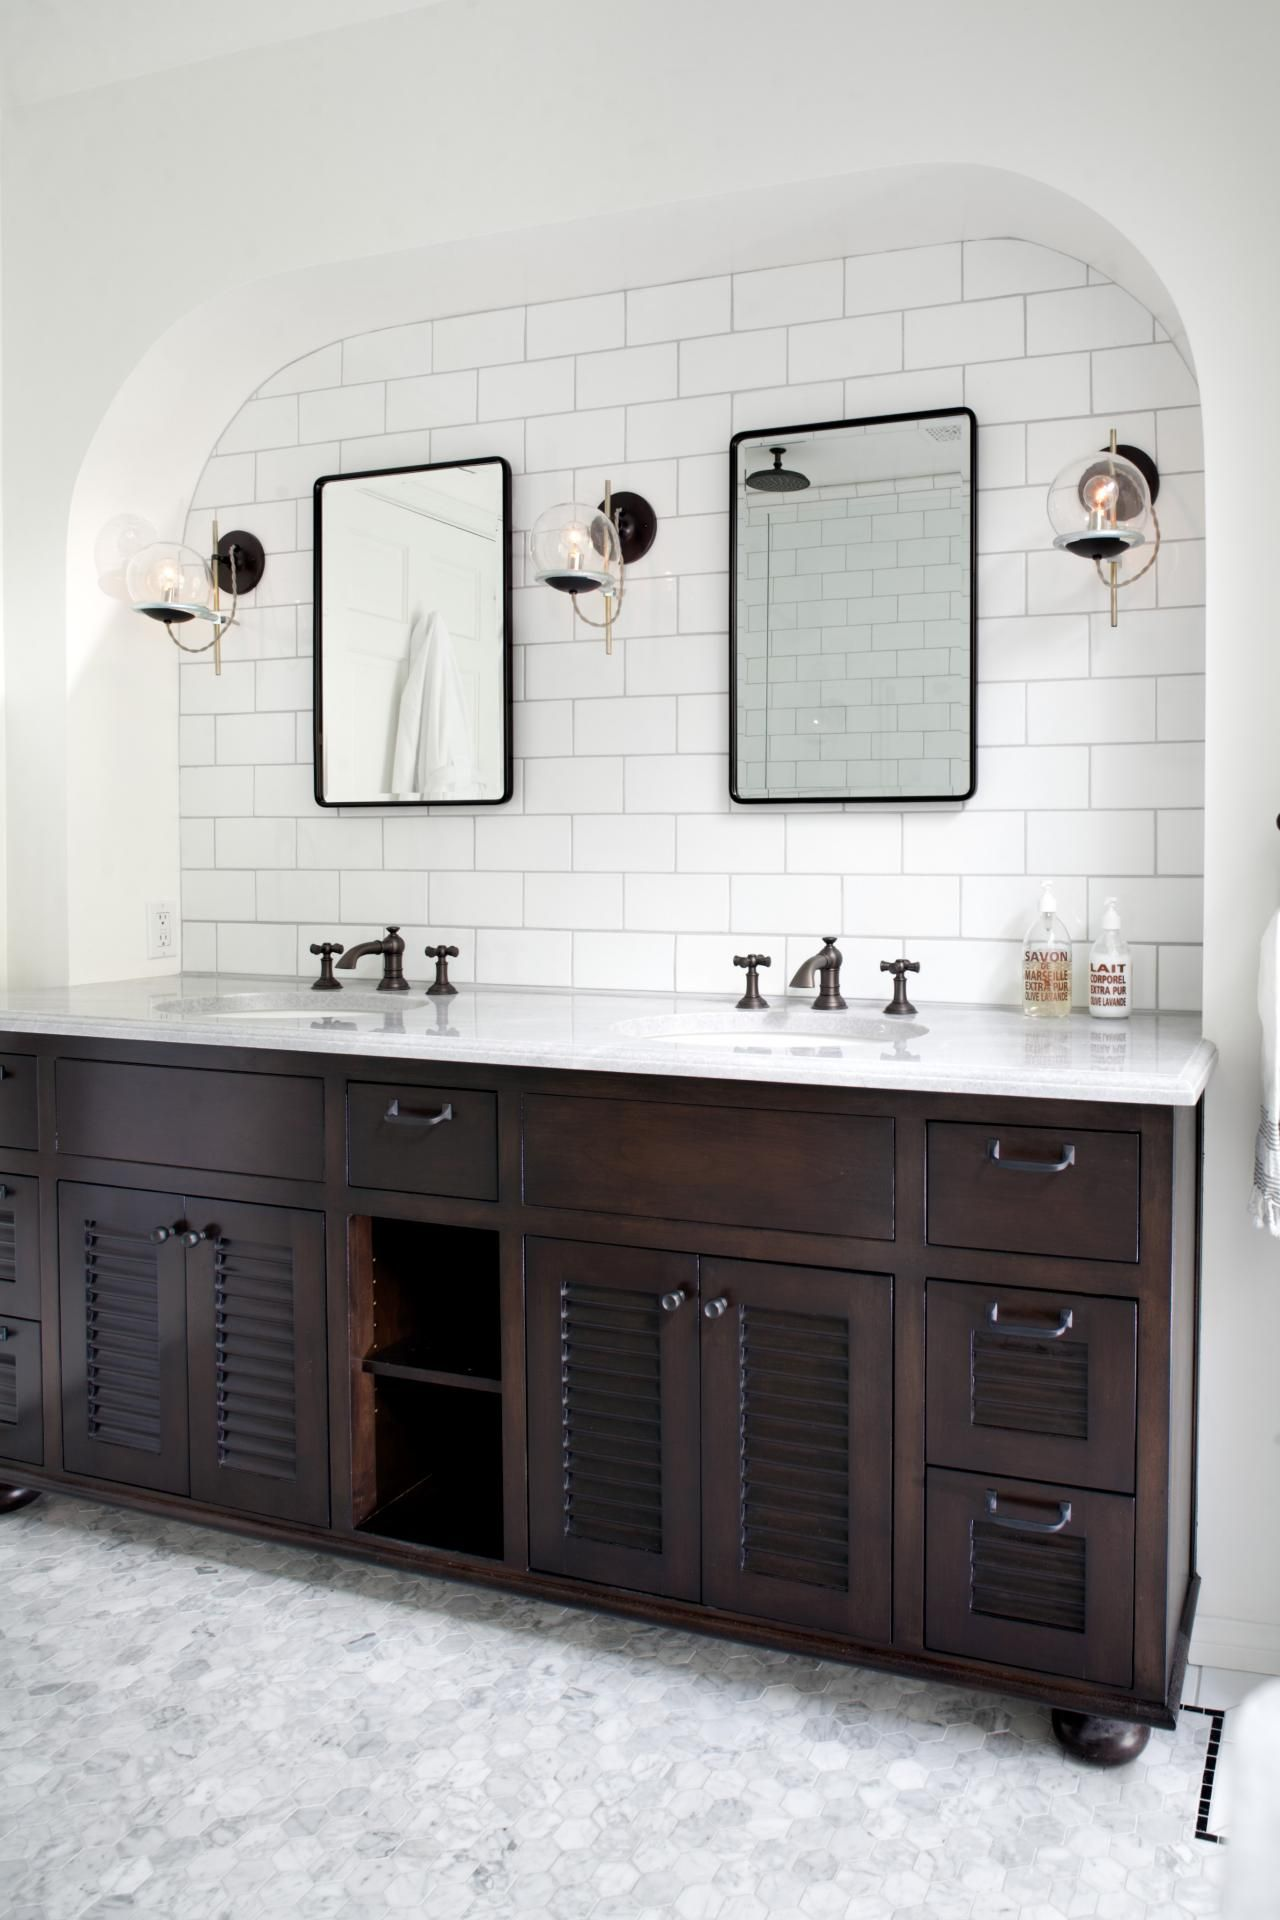 Bathroom Vanity Light Mounting Height a beautiful arch shape frames the white tile wall above this